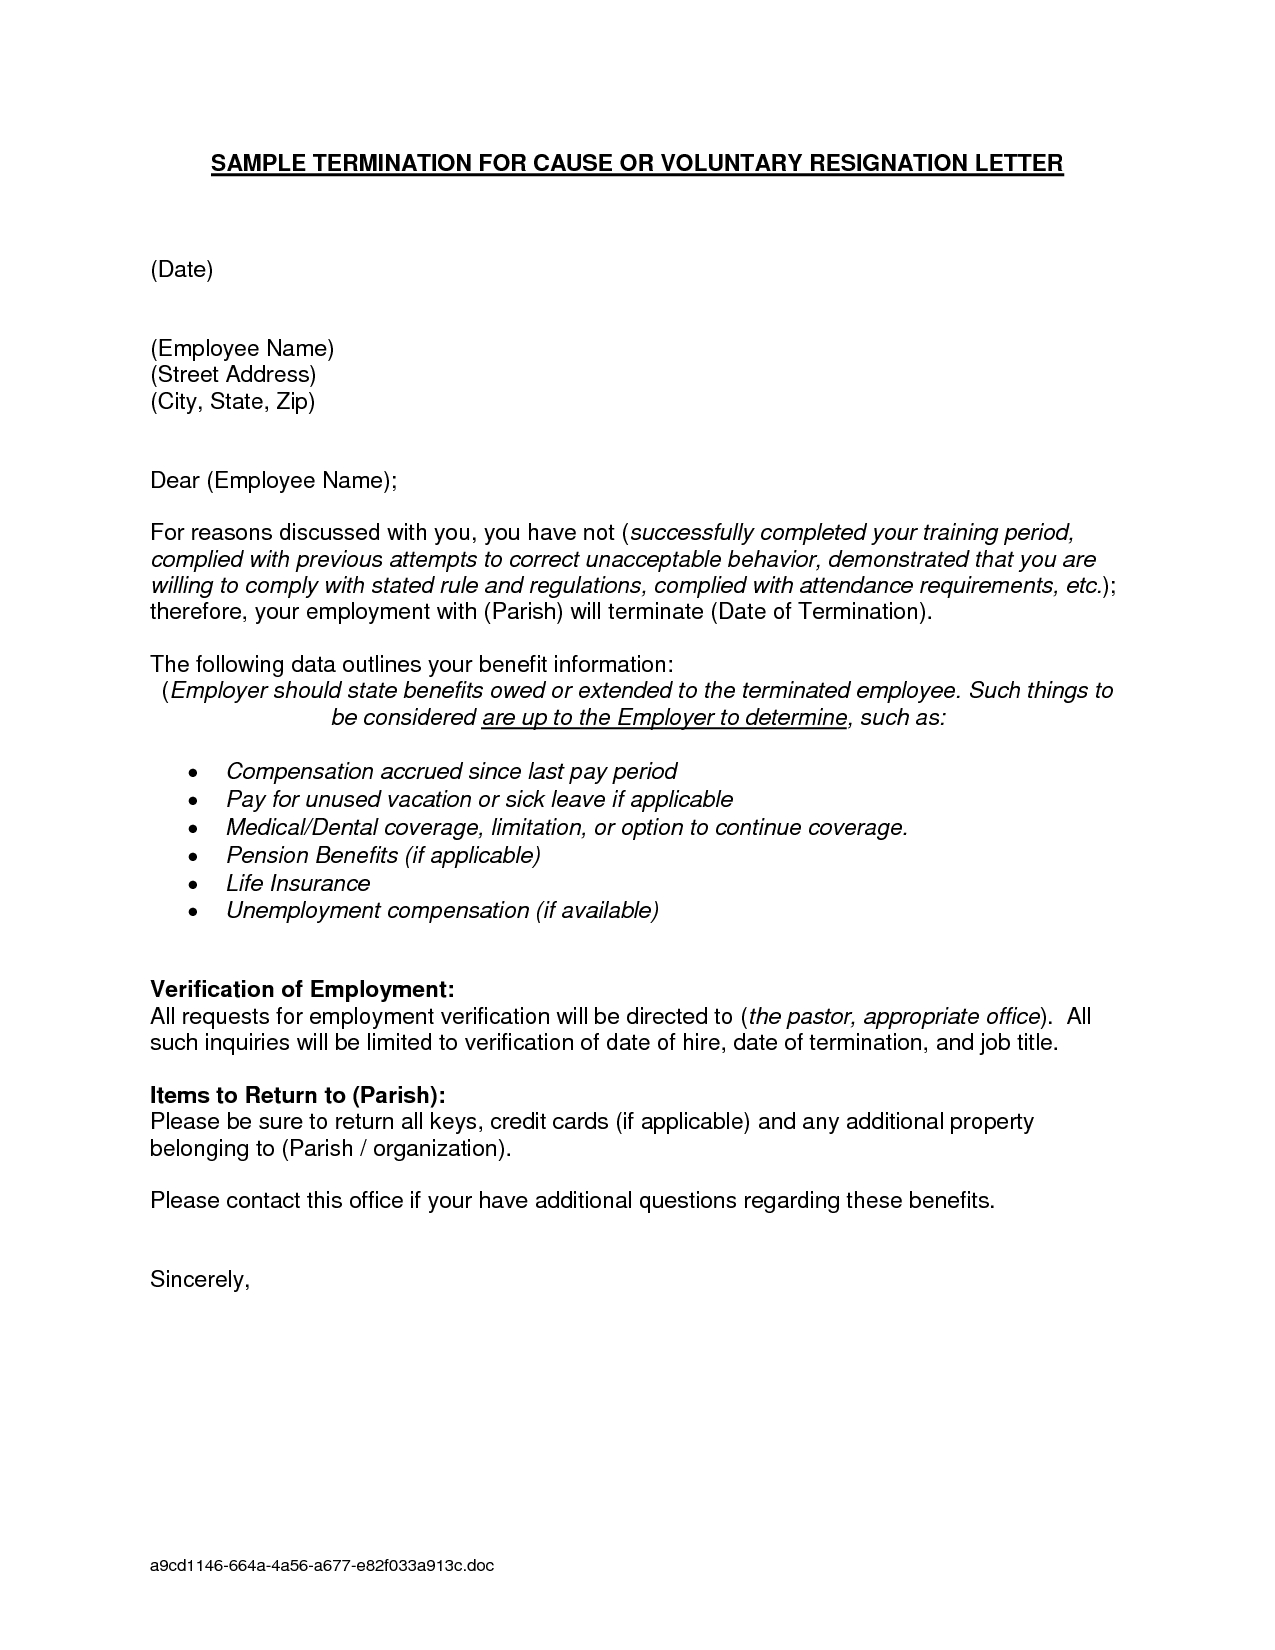 Severance Letter Template Free - Medical Resignation Letter Sample Due Illness Example Icover